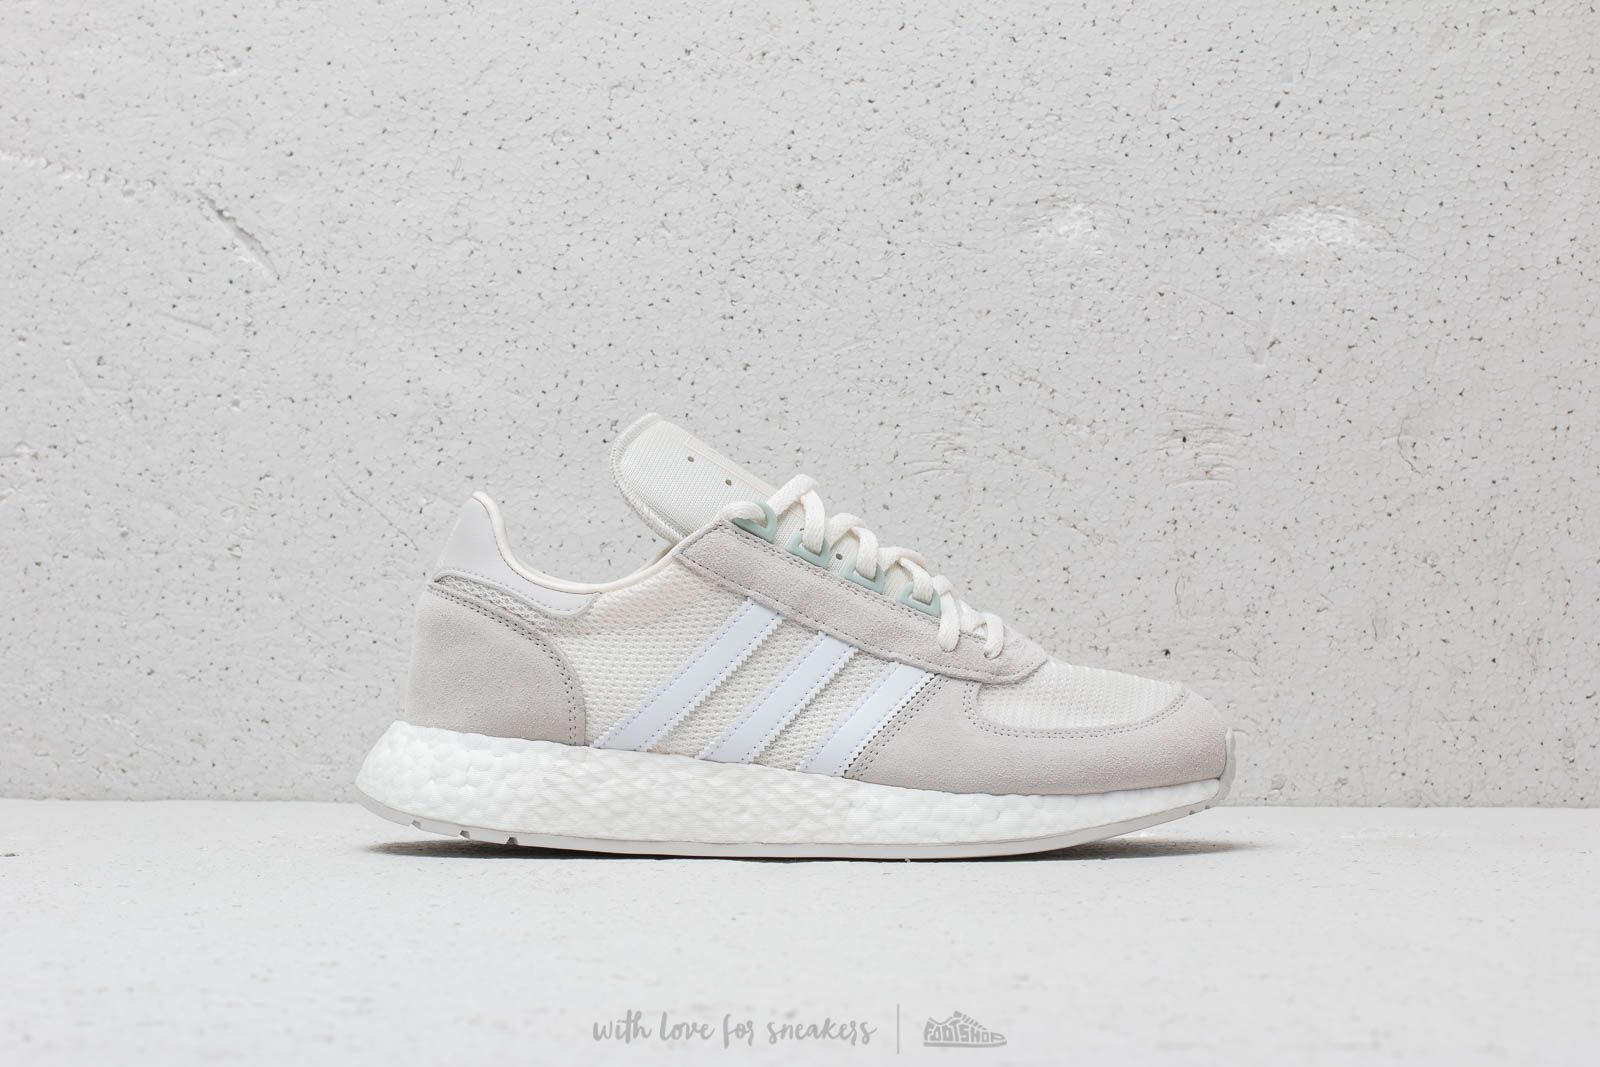 new concept 61f19 b49c5 adidas Marathon x 5923 Cloud White  Footwear White  Grey One at a great  price